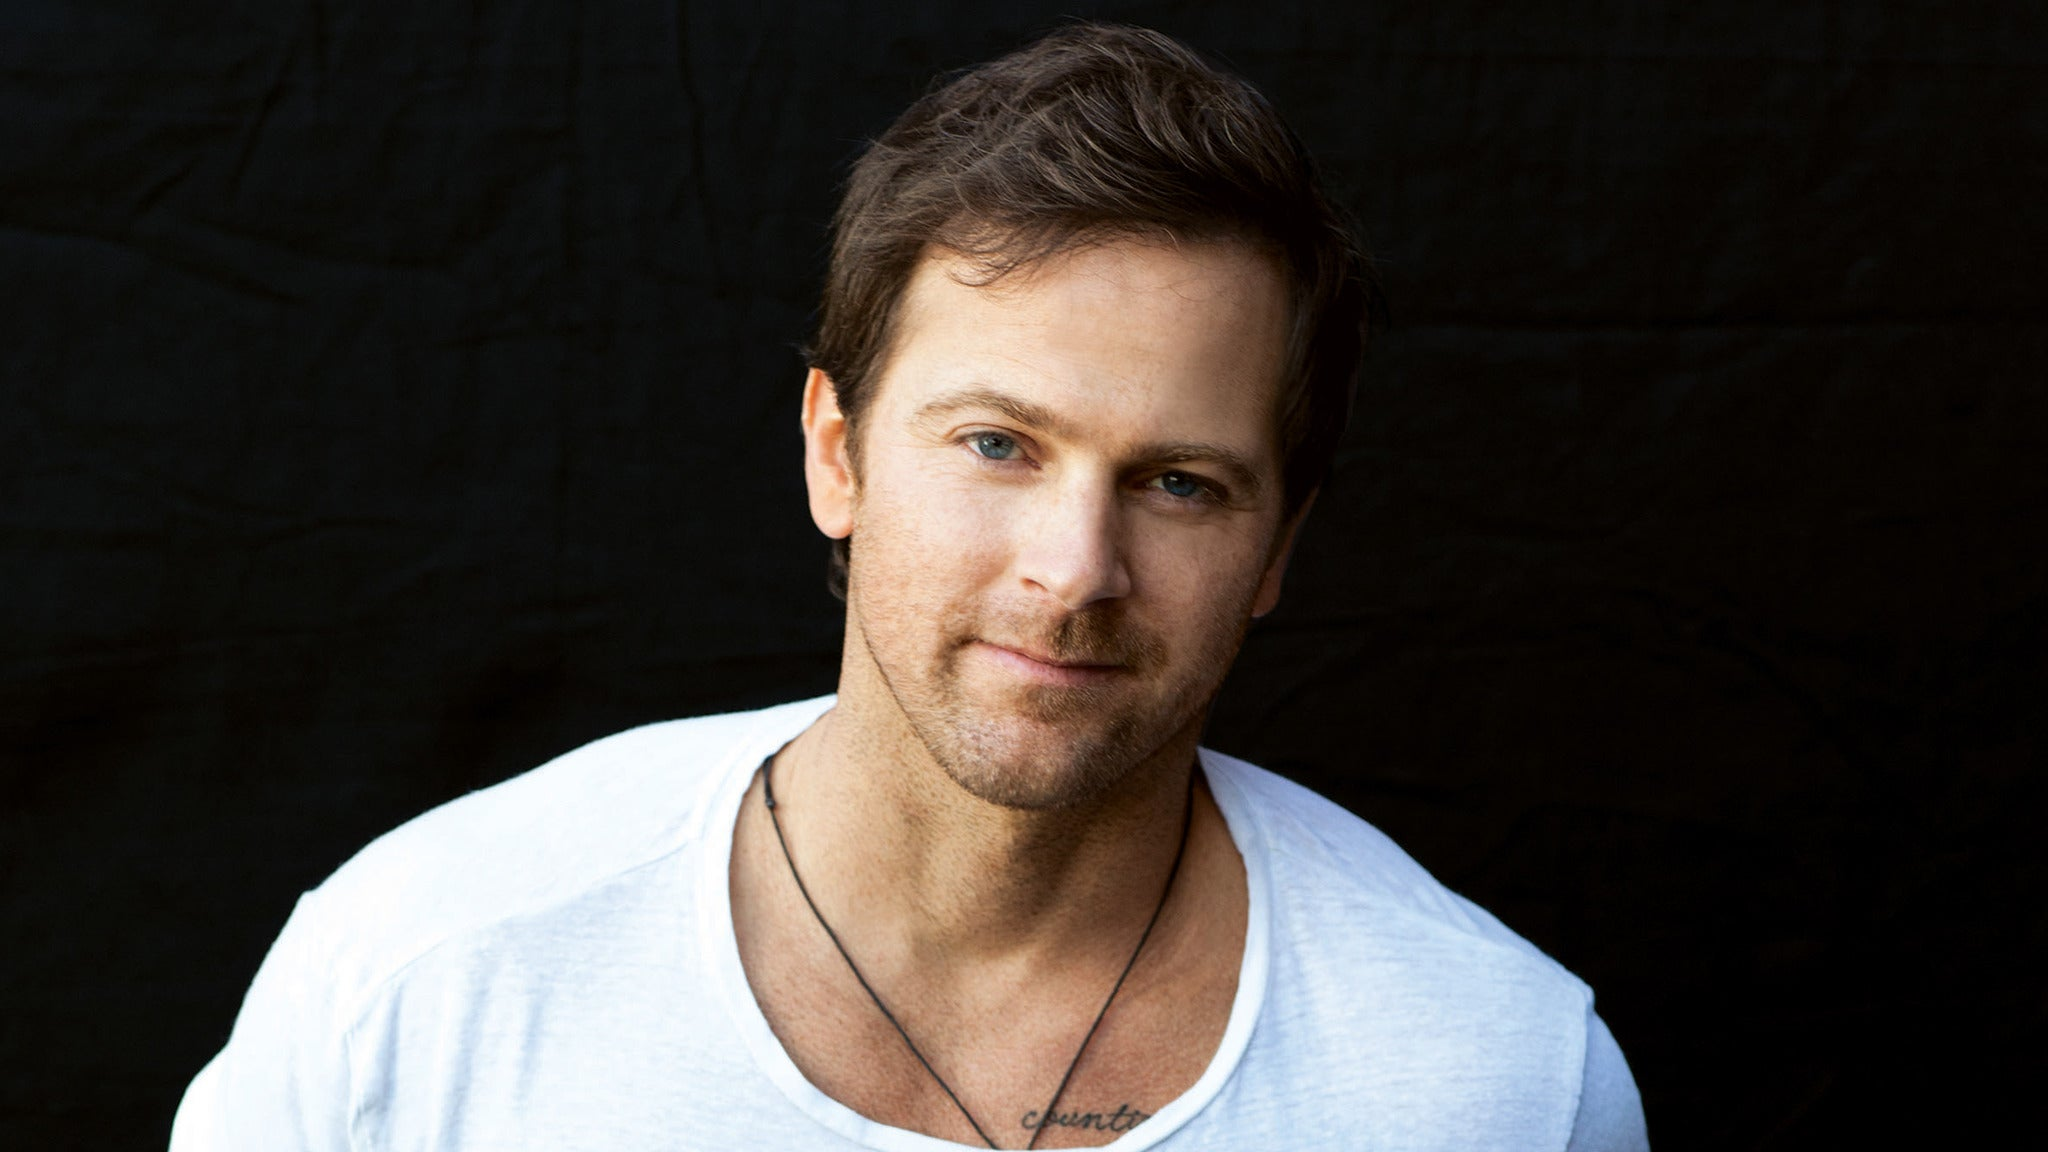 Kip Moore with support act Jon Pardi at U.S. Cellular Center - Cedar Rapids, IA 52401